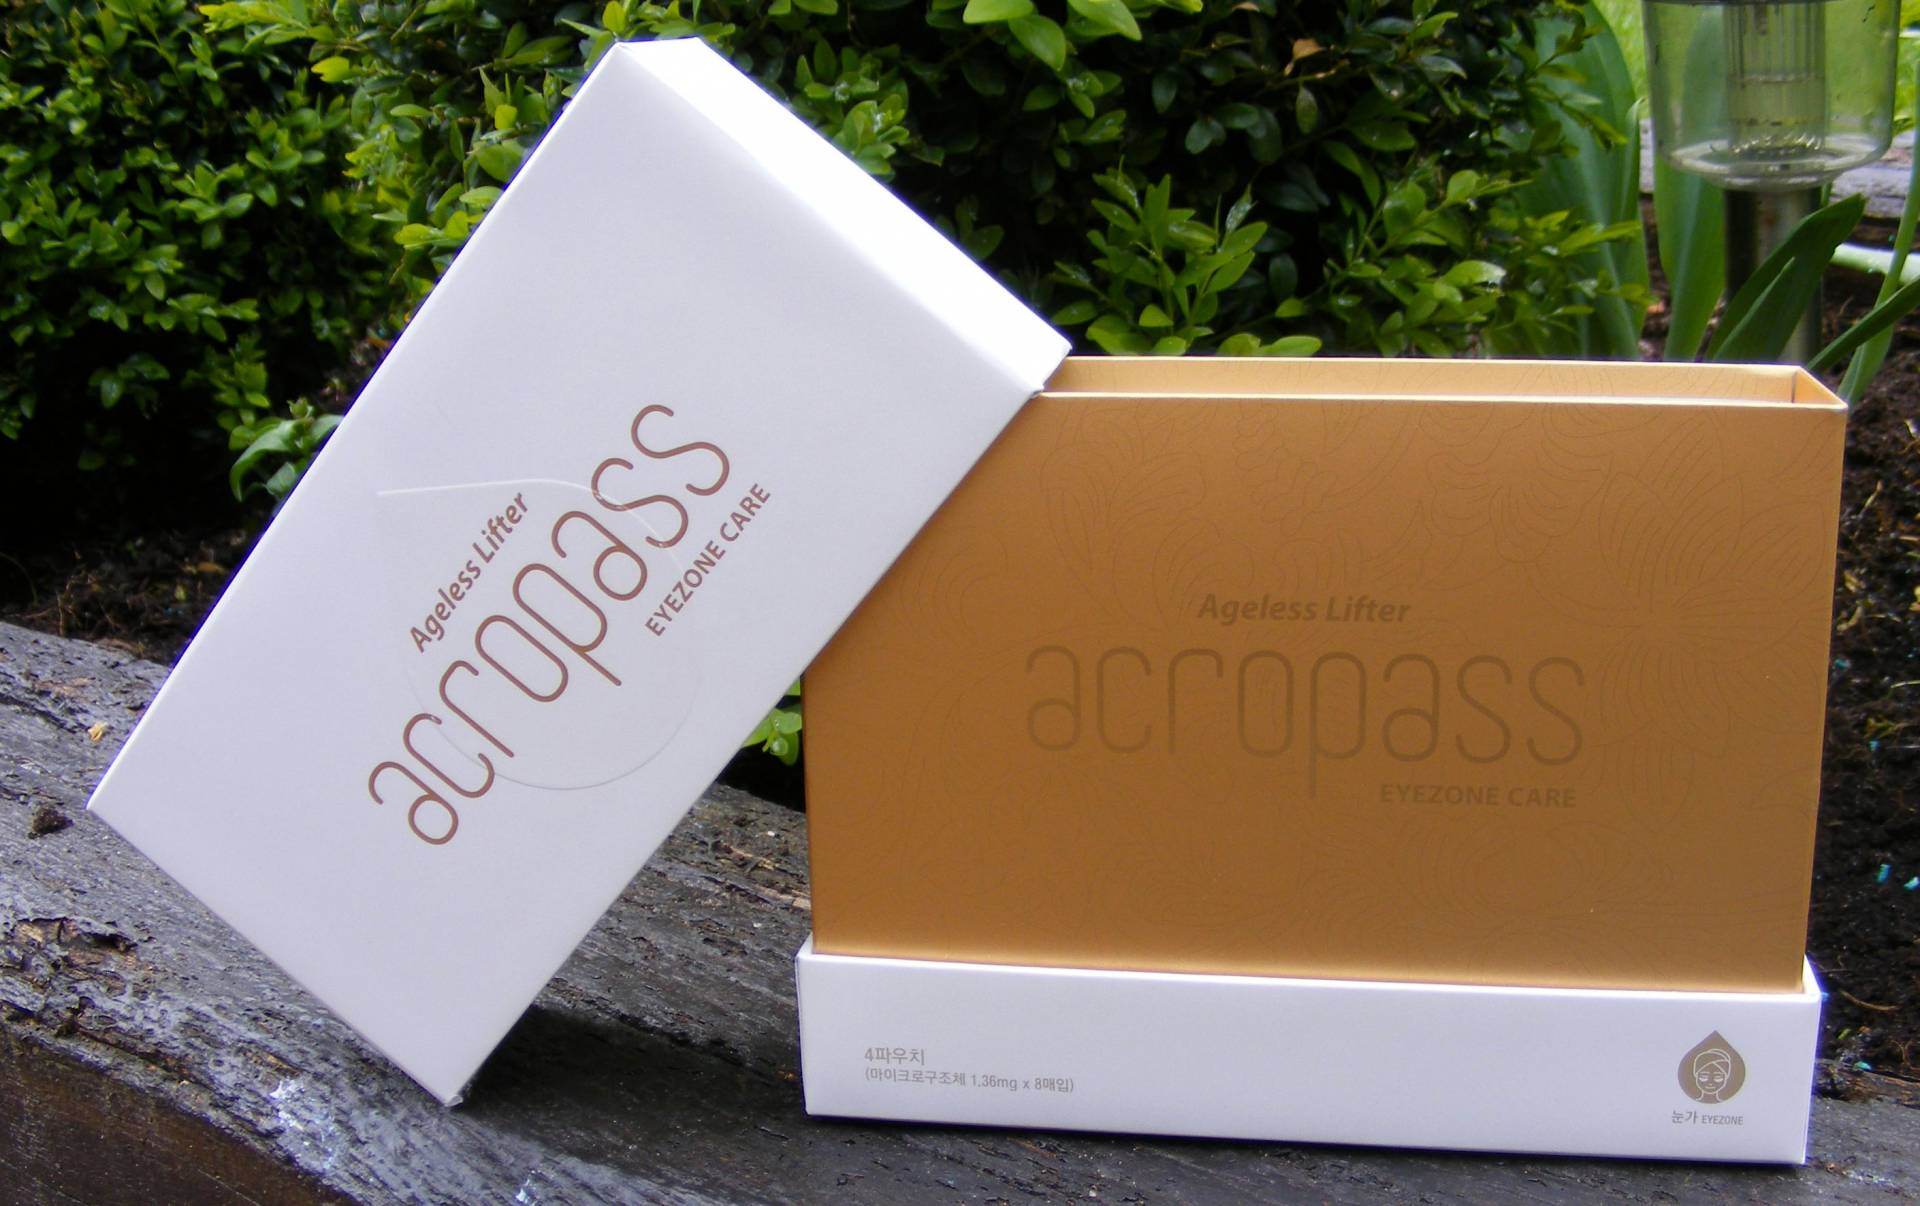 Acropass Ageless Lifter Eyezone Care Review and Giveaway